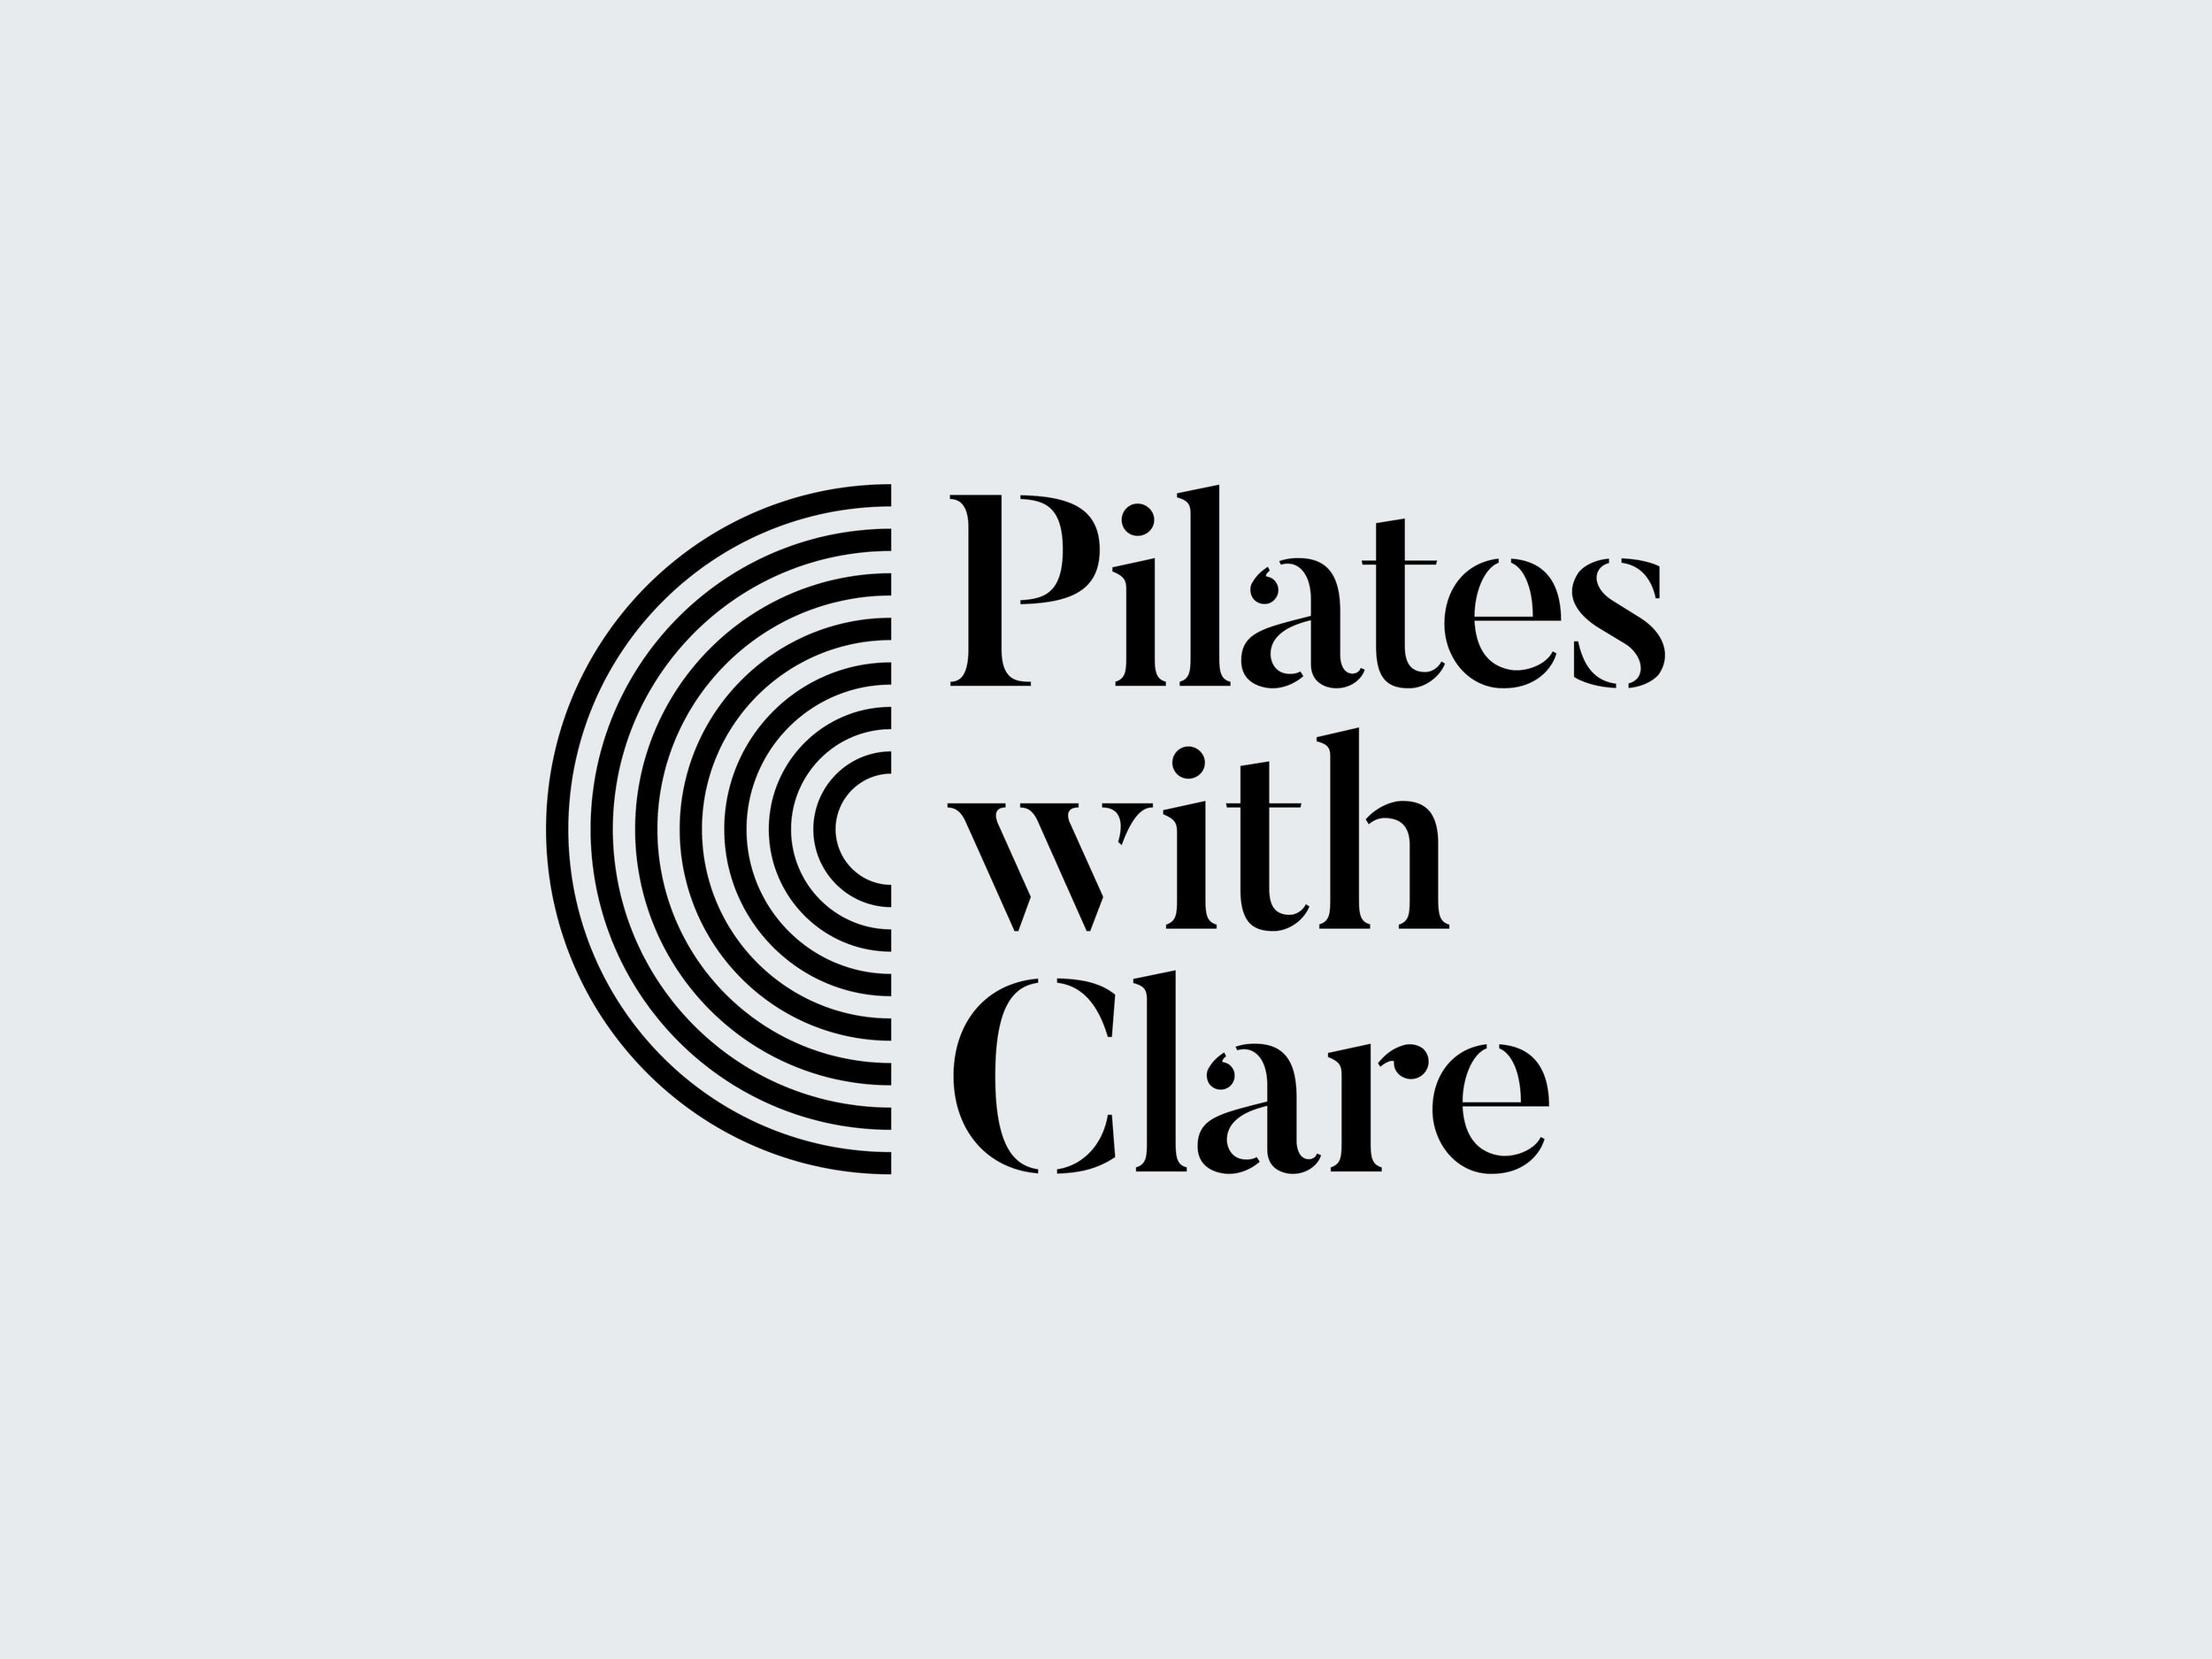 Pilates-with-claire-logo.jpg